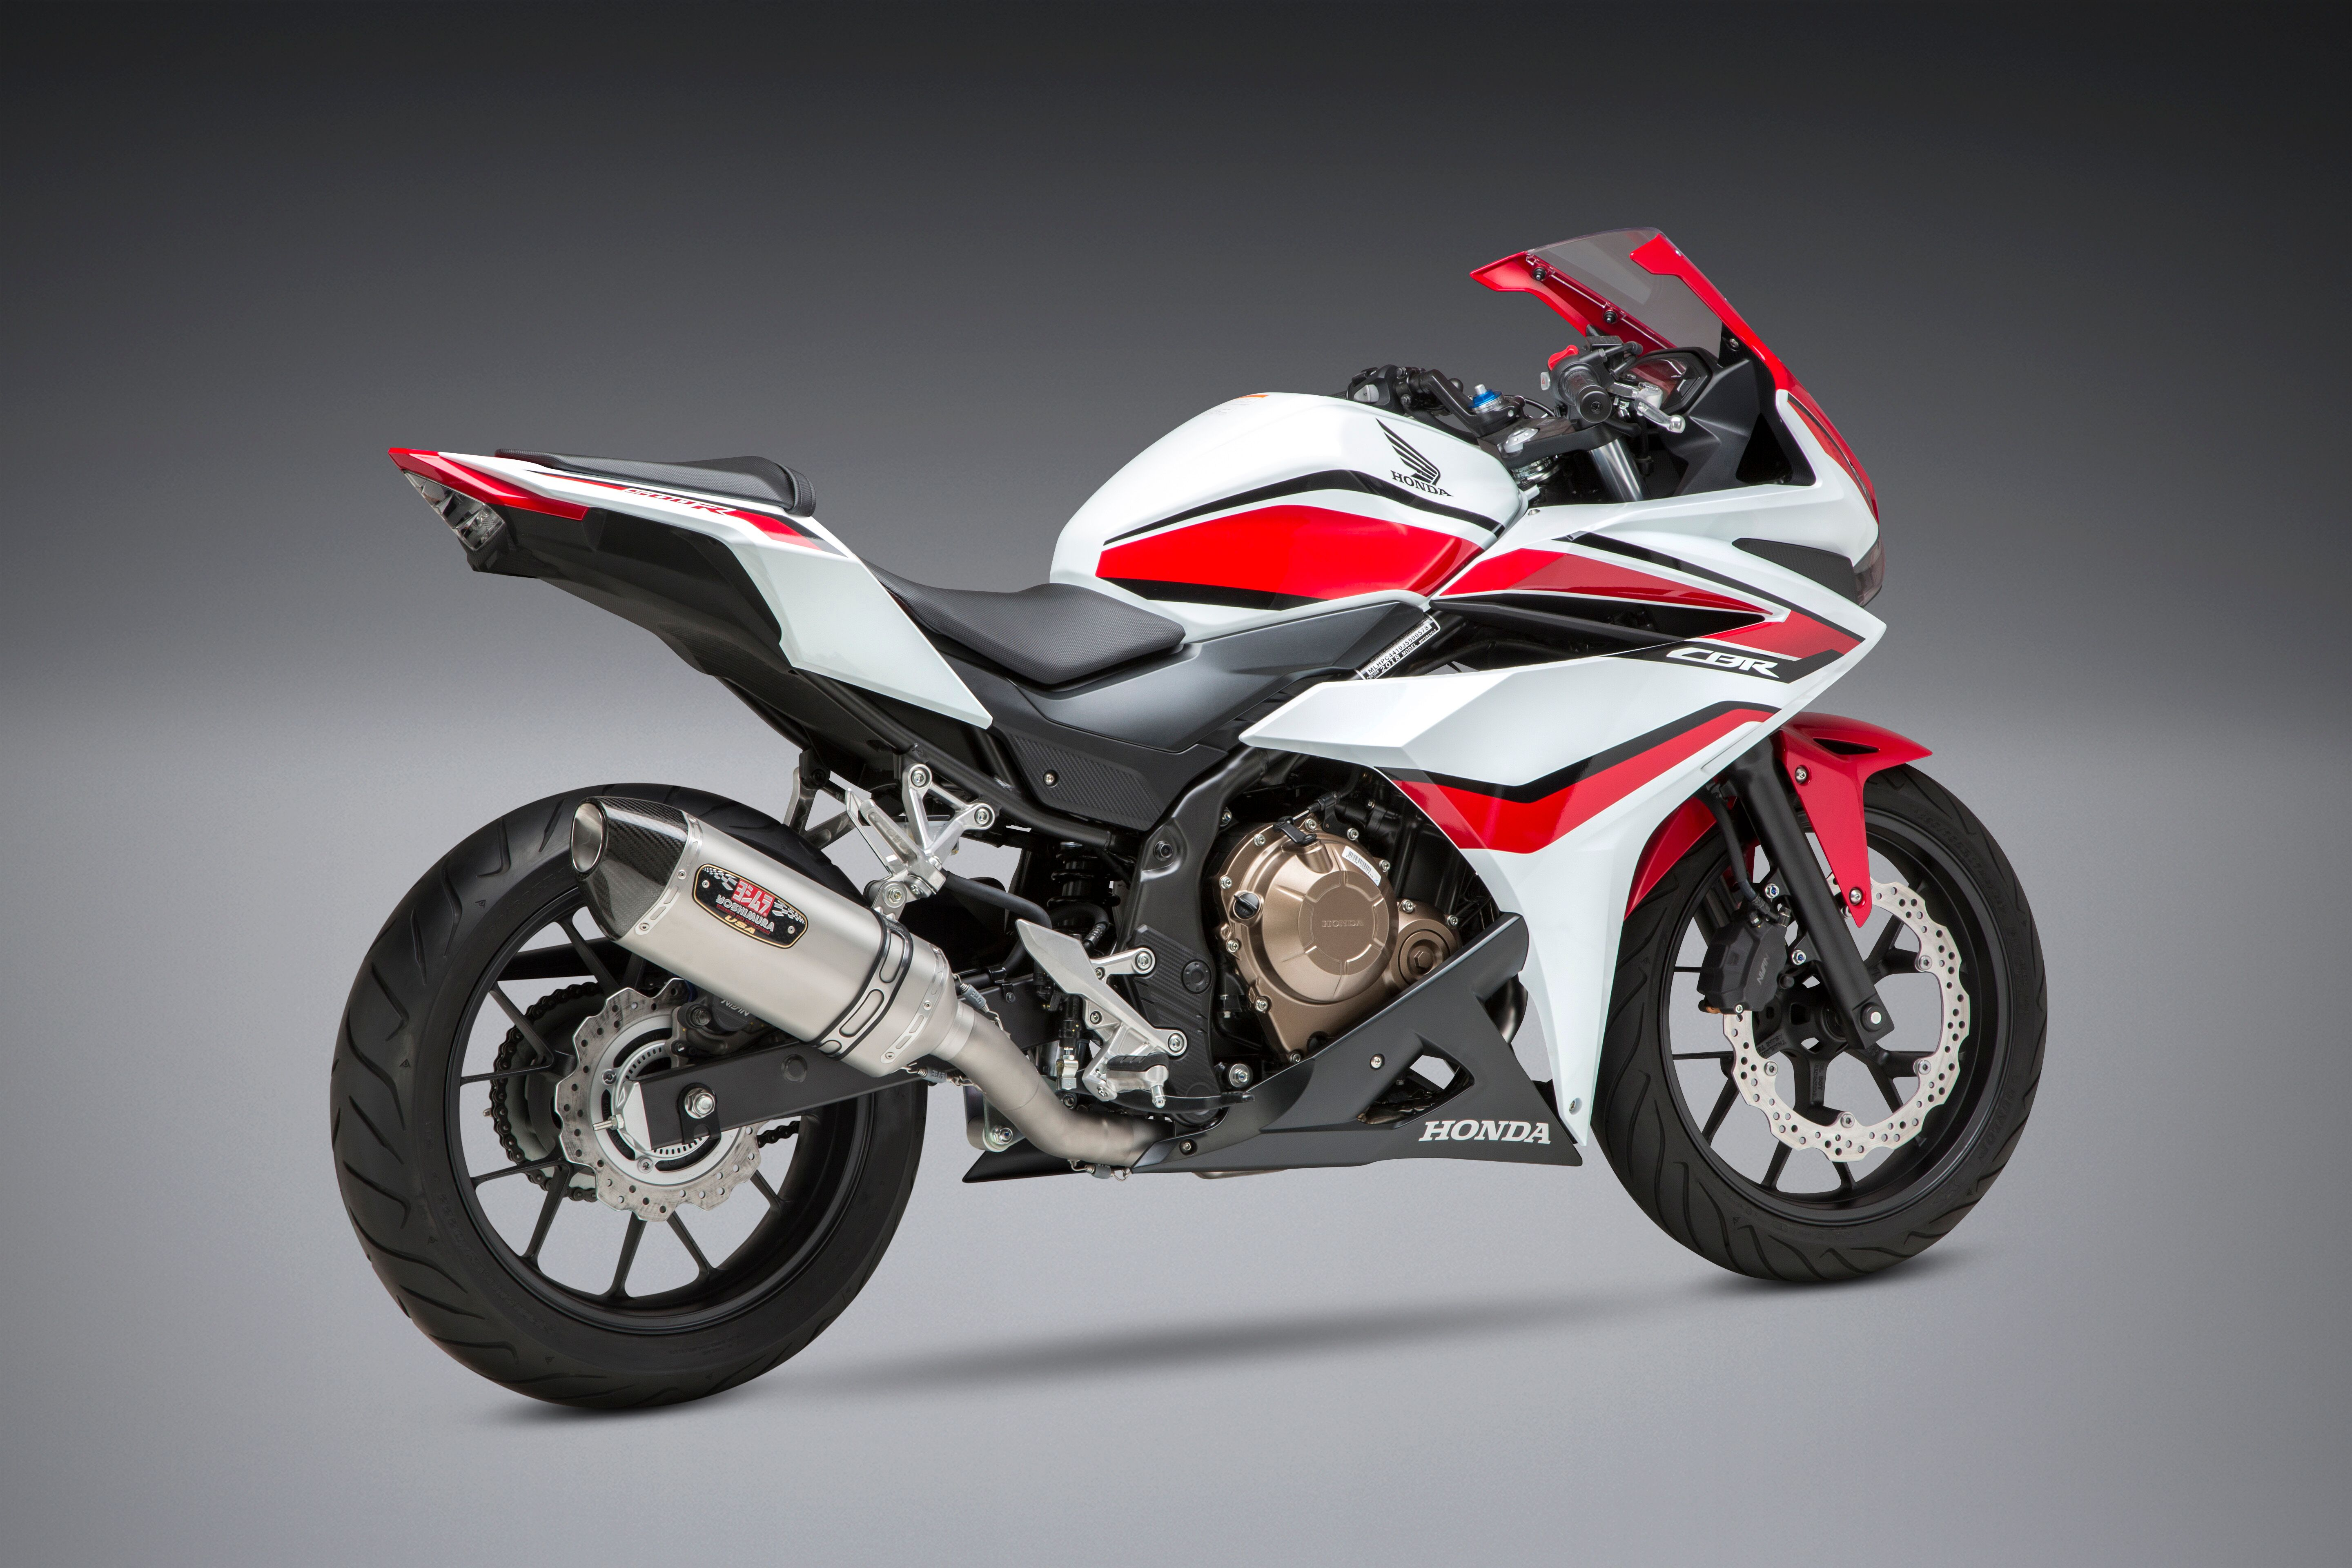 Yoshimura R-77 Race Series Exhaust System with Stainless Steel Cannister for 2014-2018 Honda CBR500R